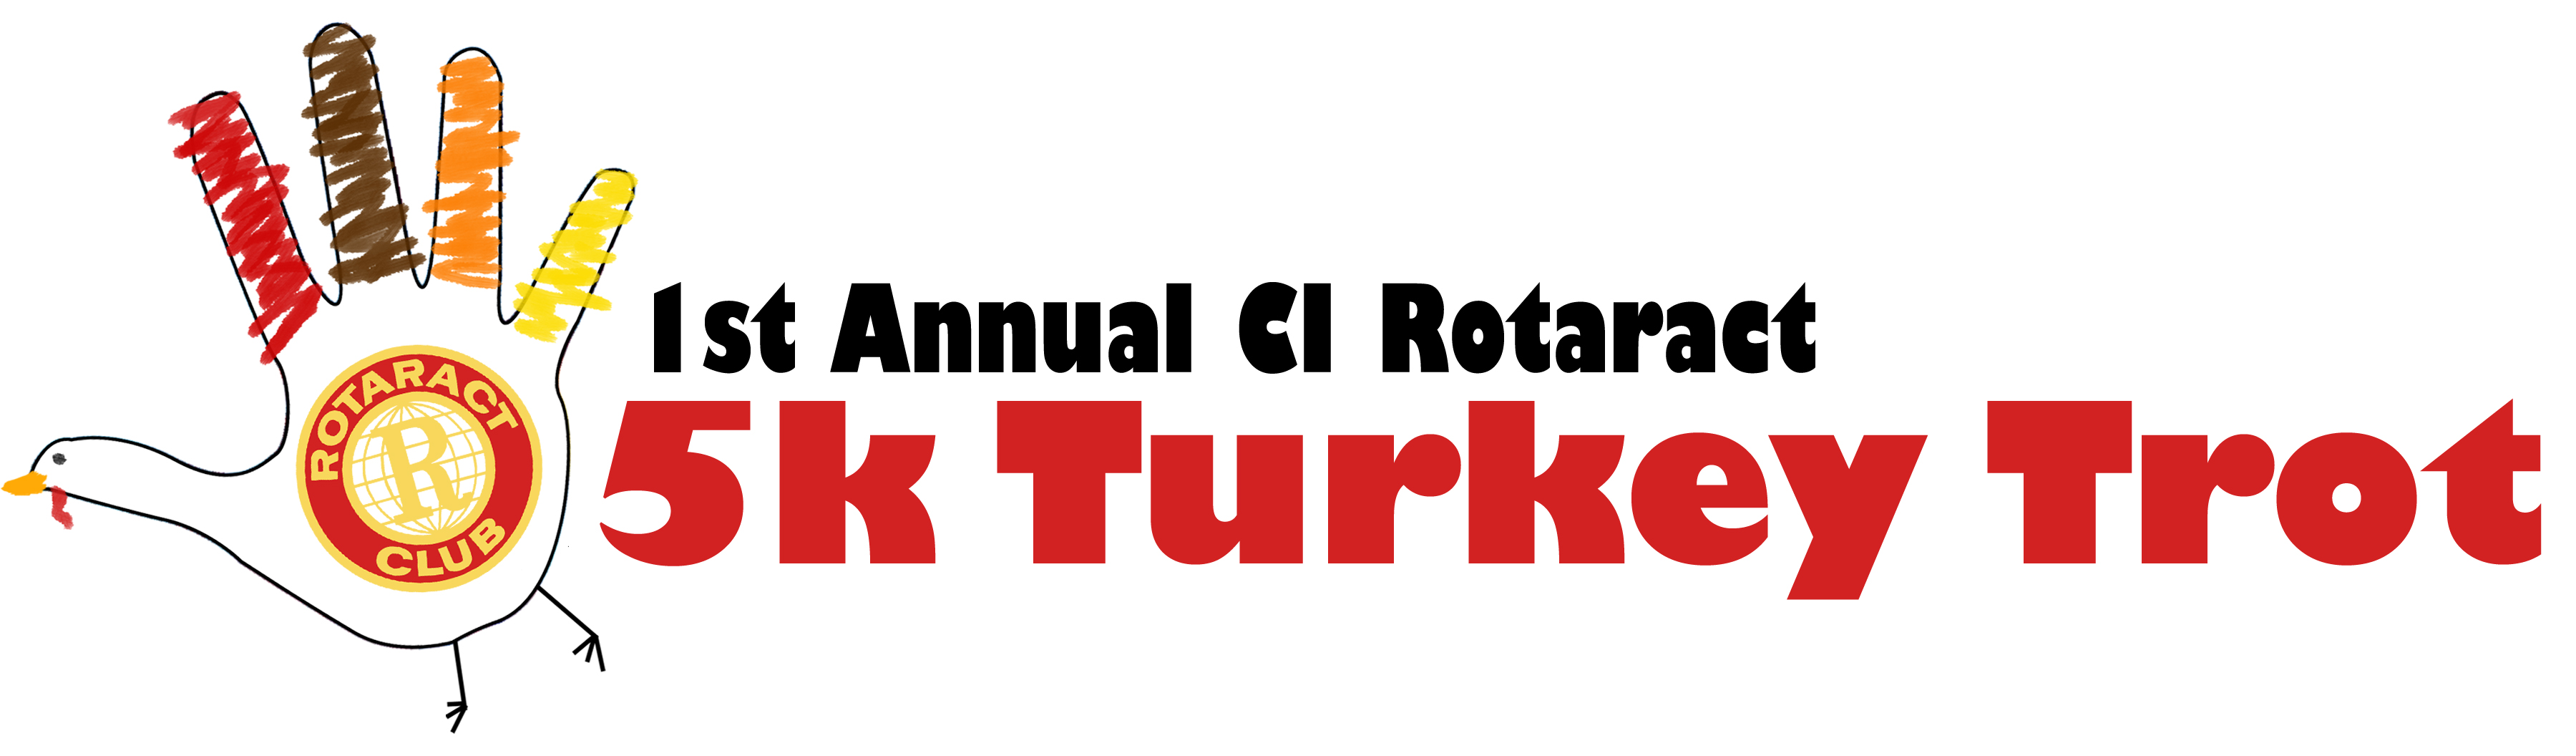 1st Annual CI Rotaract Turkey Trot